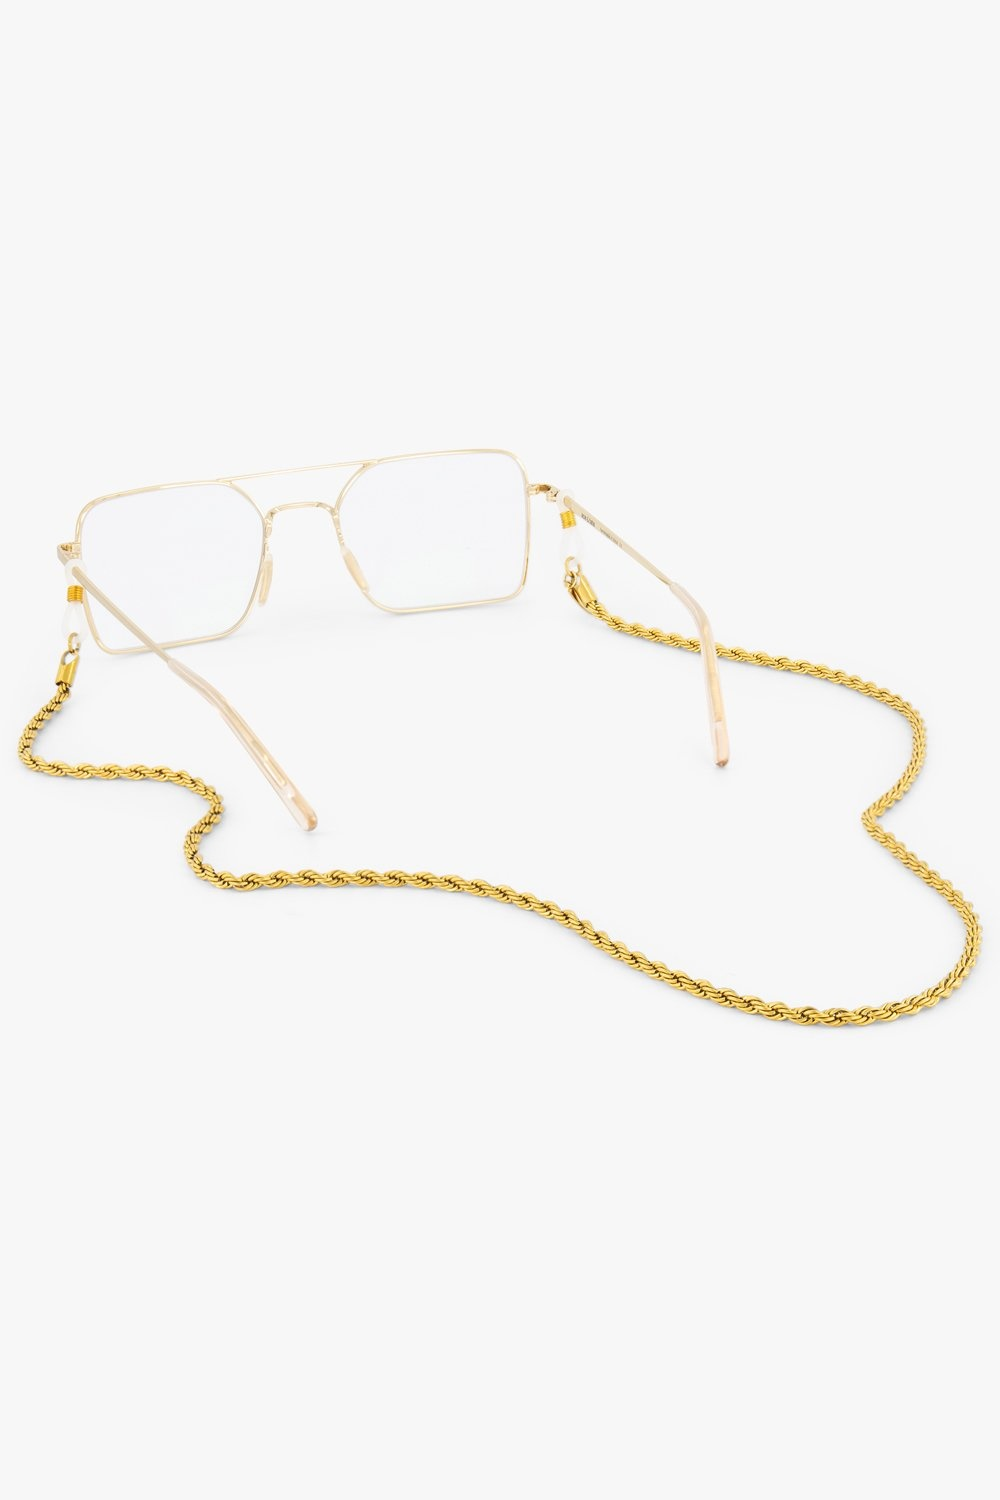 Sunnycord snake chain gold-1